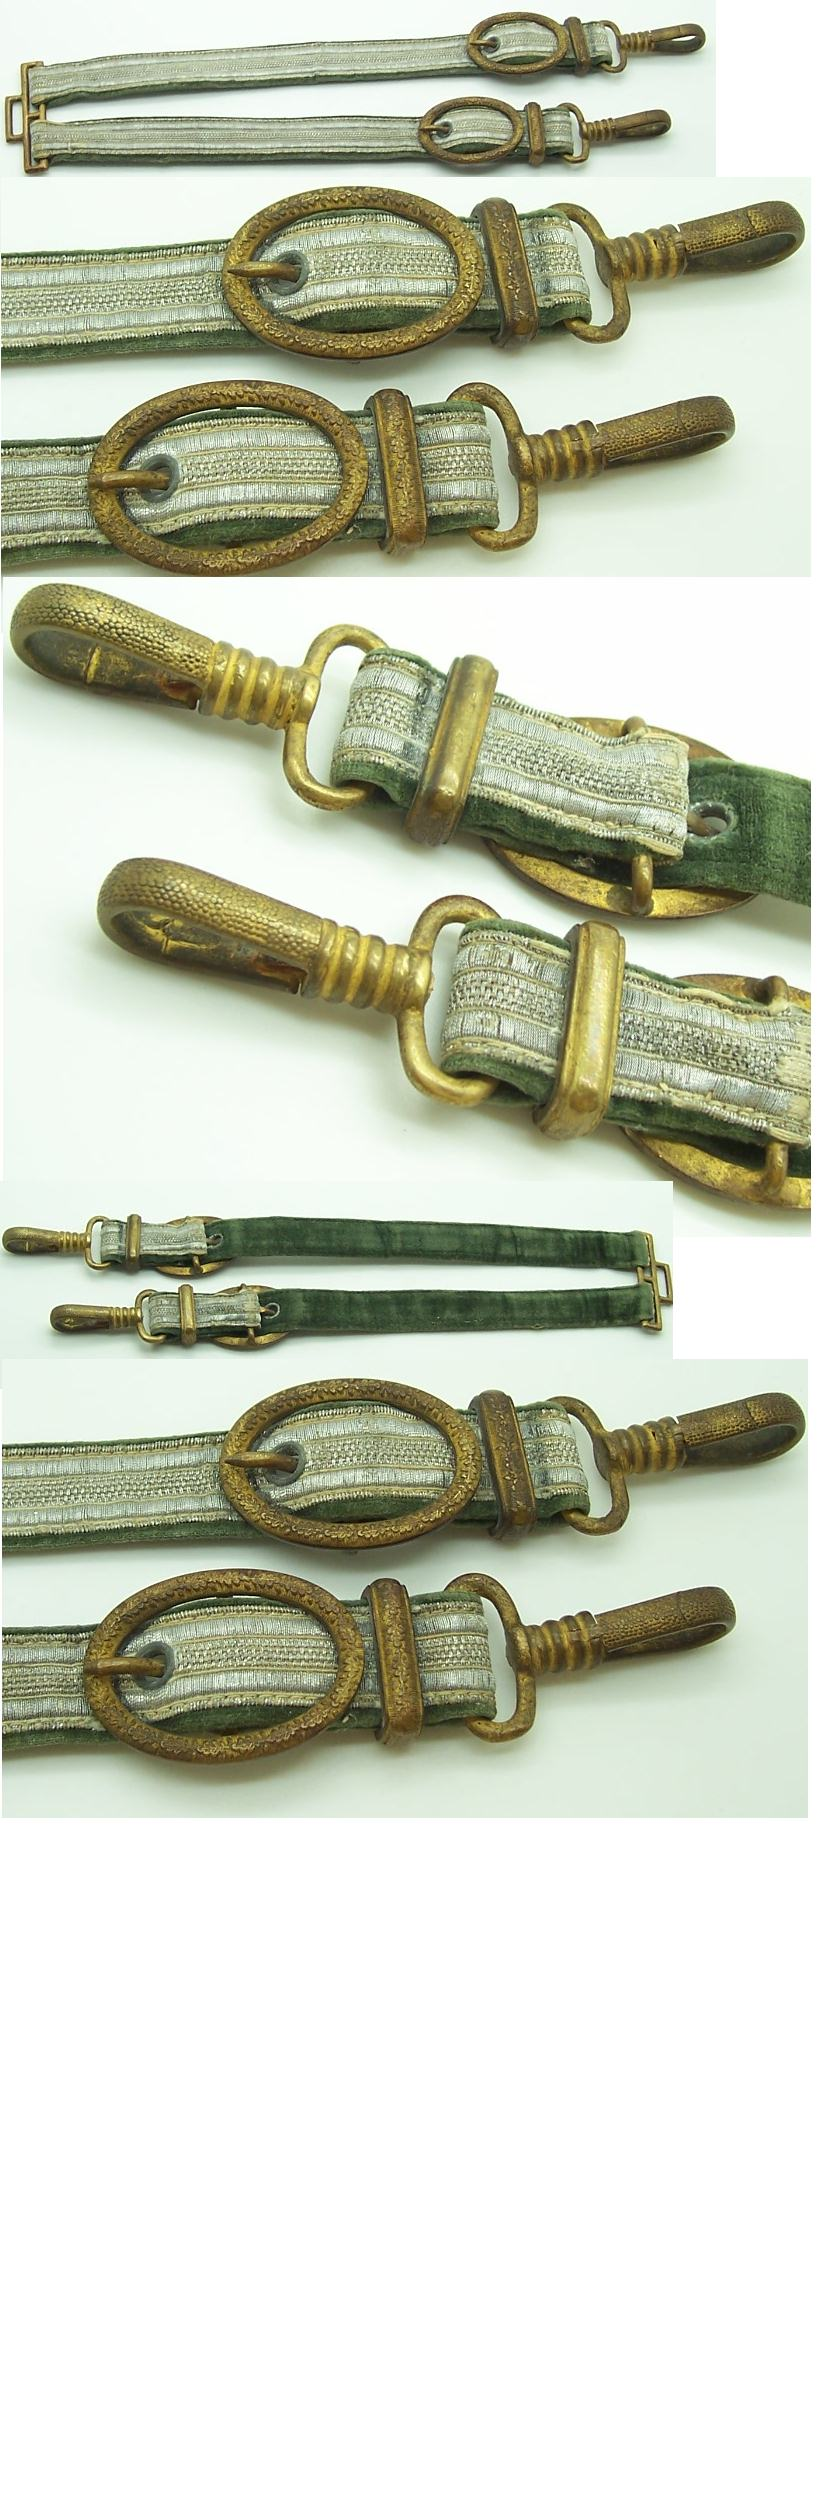 Rare Early Army General's hangers in tombak